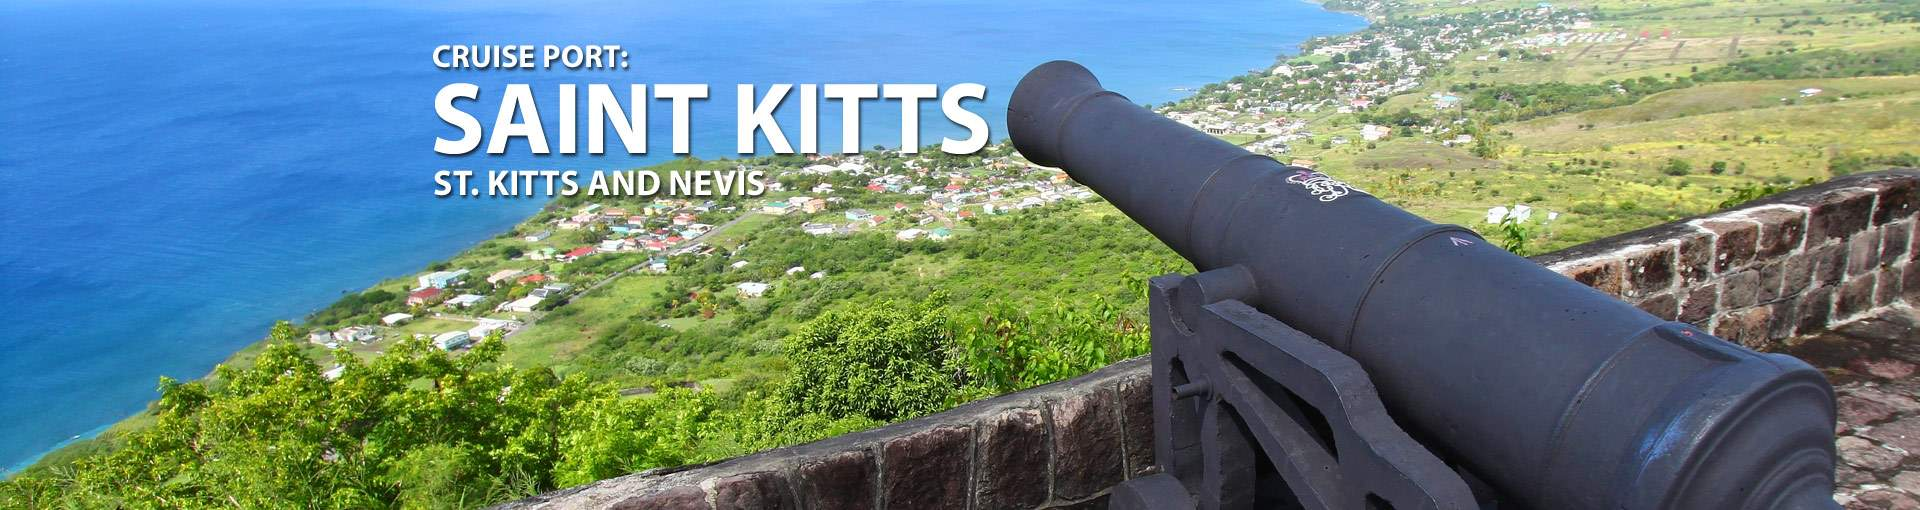 Cruises to St. Kitts, St. Kitts and Nevis